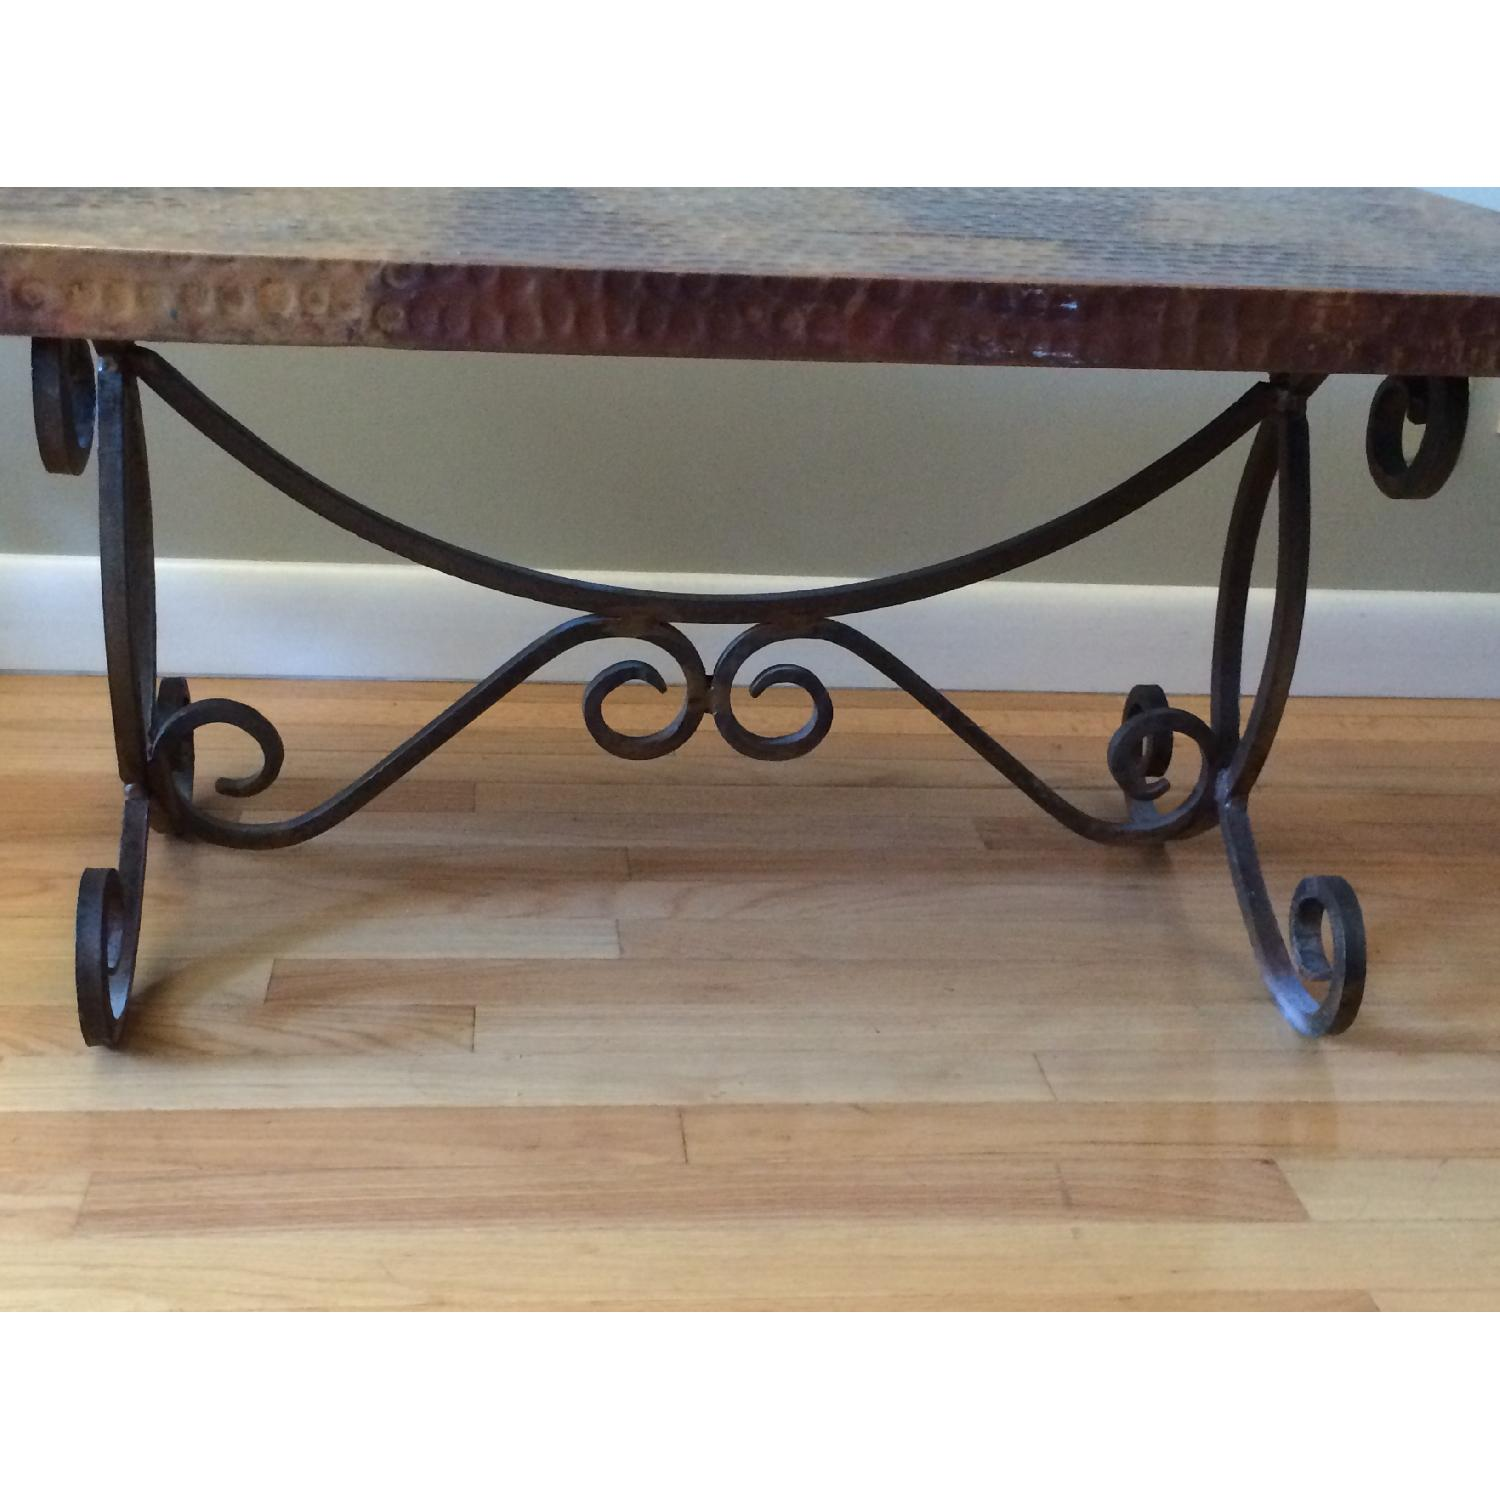 Hammered Copper Top Coffee Table - image-2